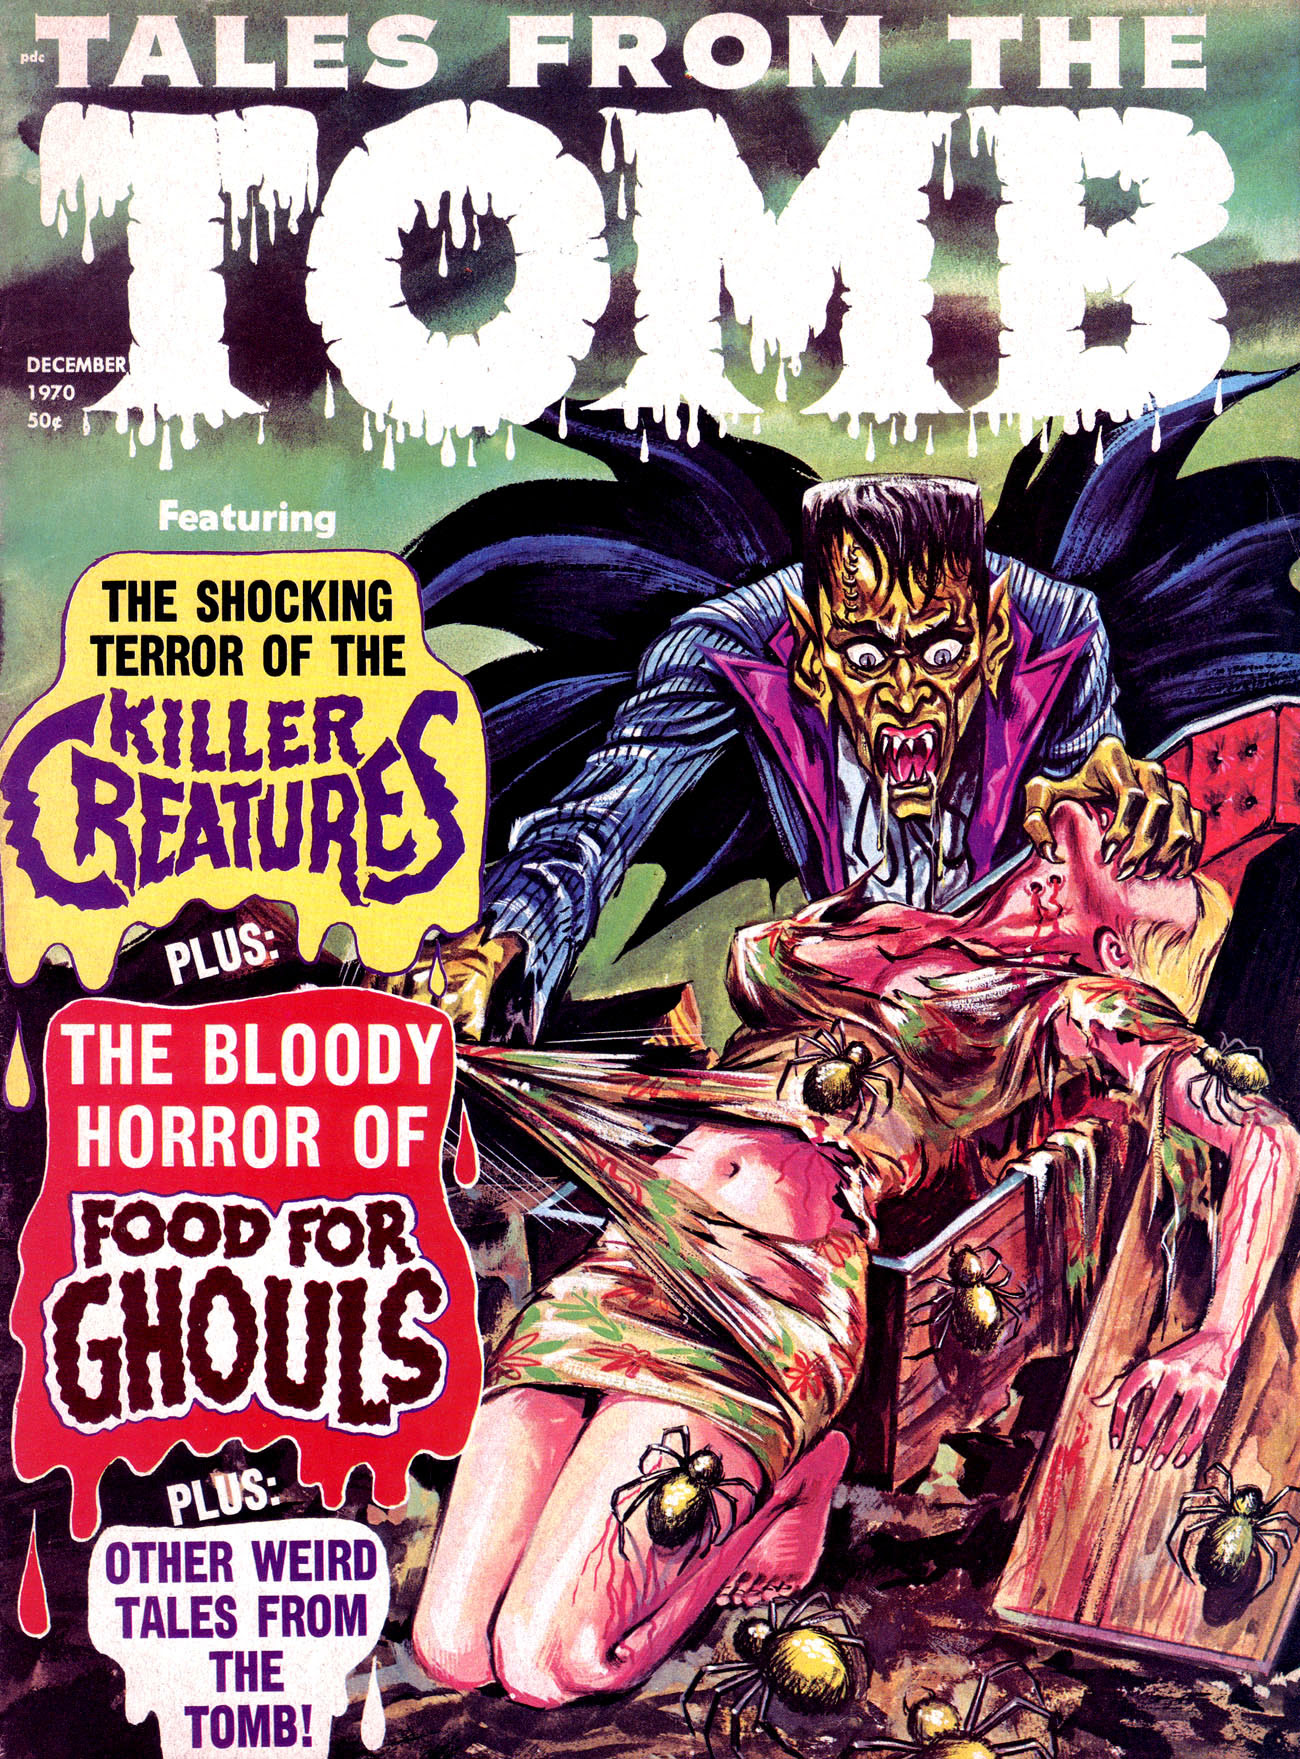 Tales from the Tomb - Vol. 2 #6 (Eerie Publications, 1970)